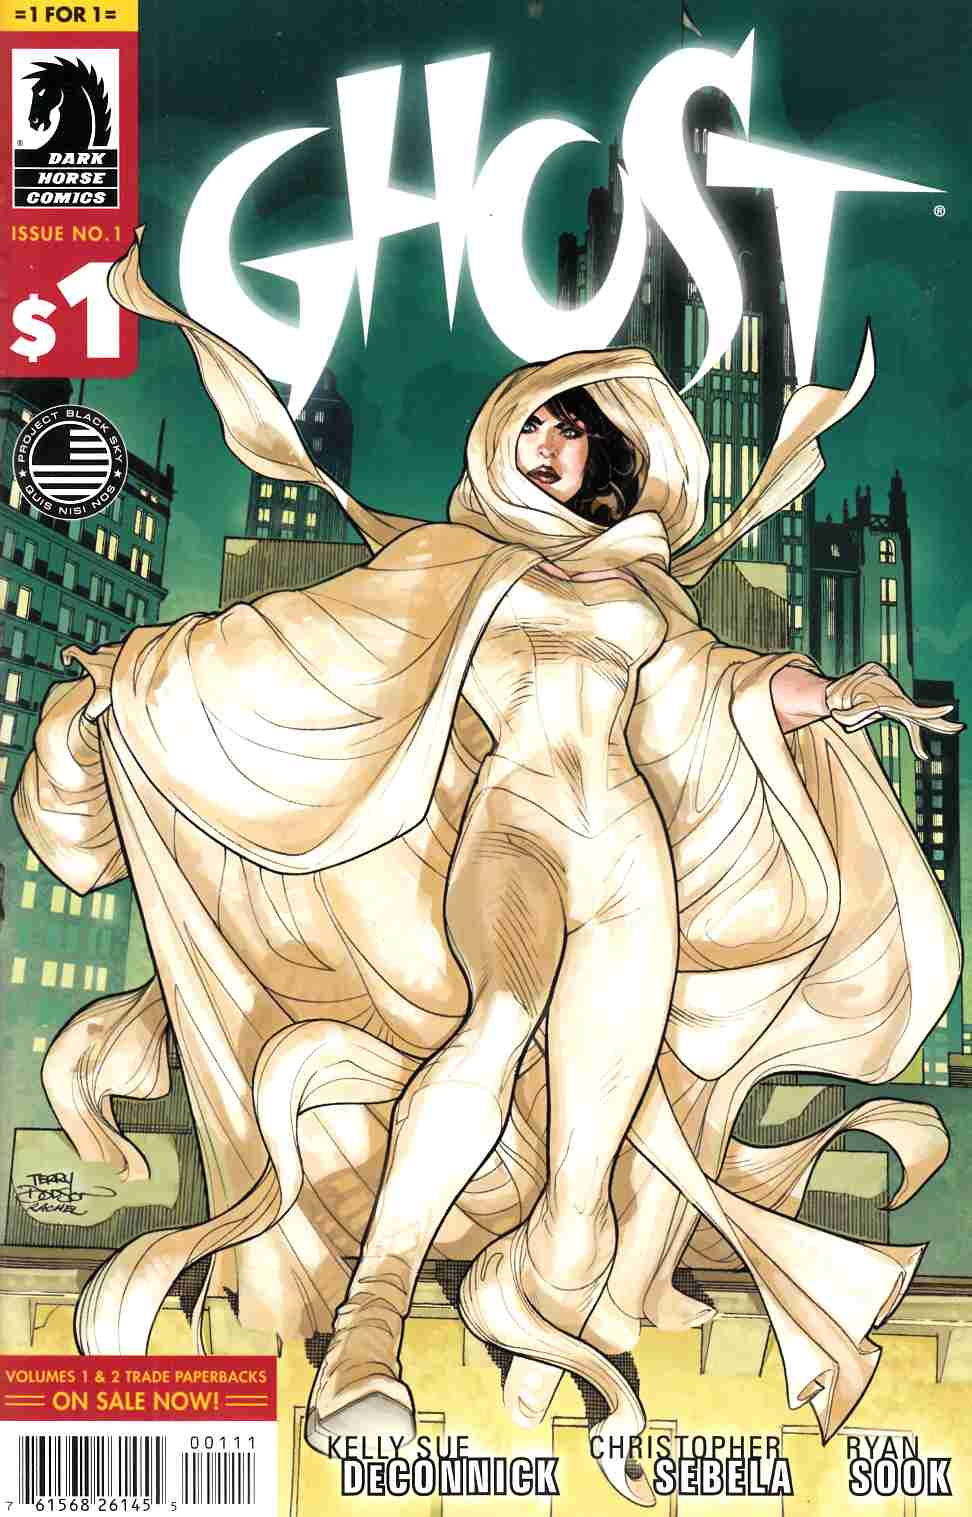 Ghost #1 1 for $1 Edition [Dark Horse Comic] THUMBNAIL